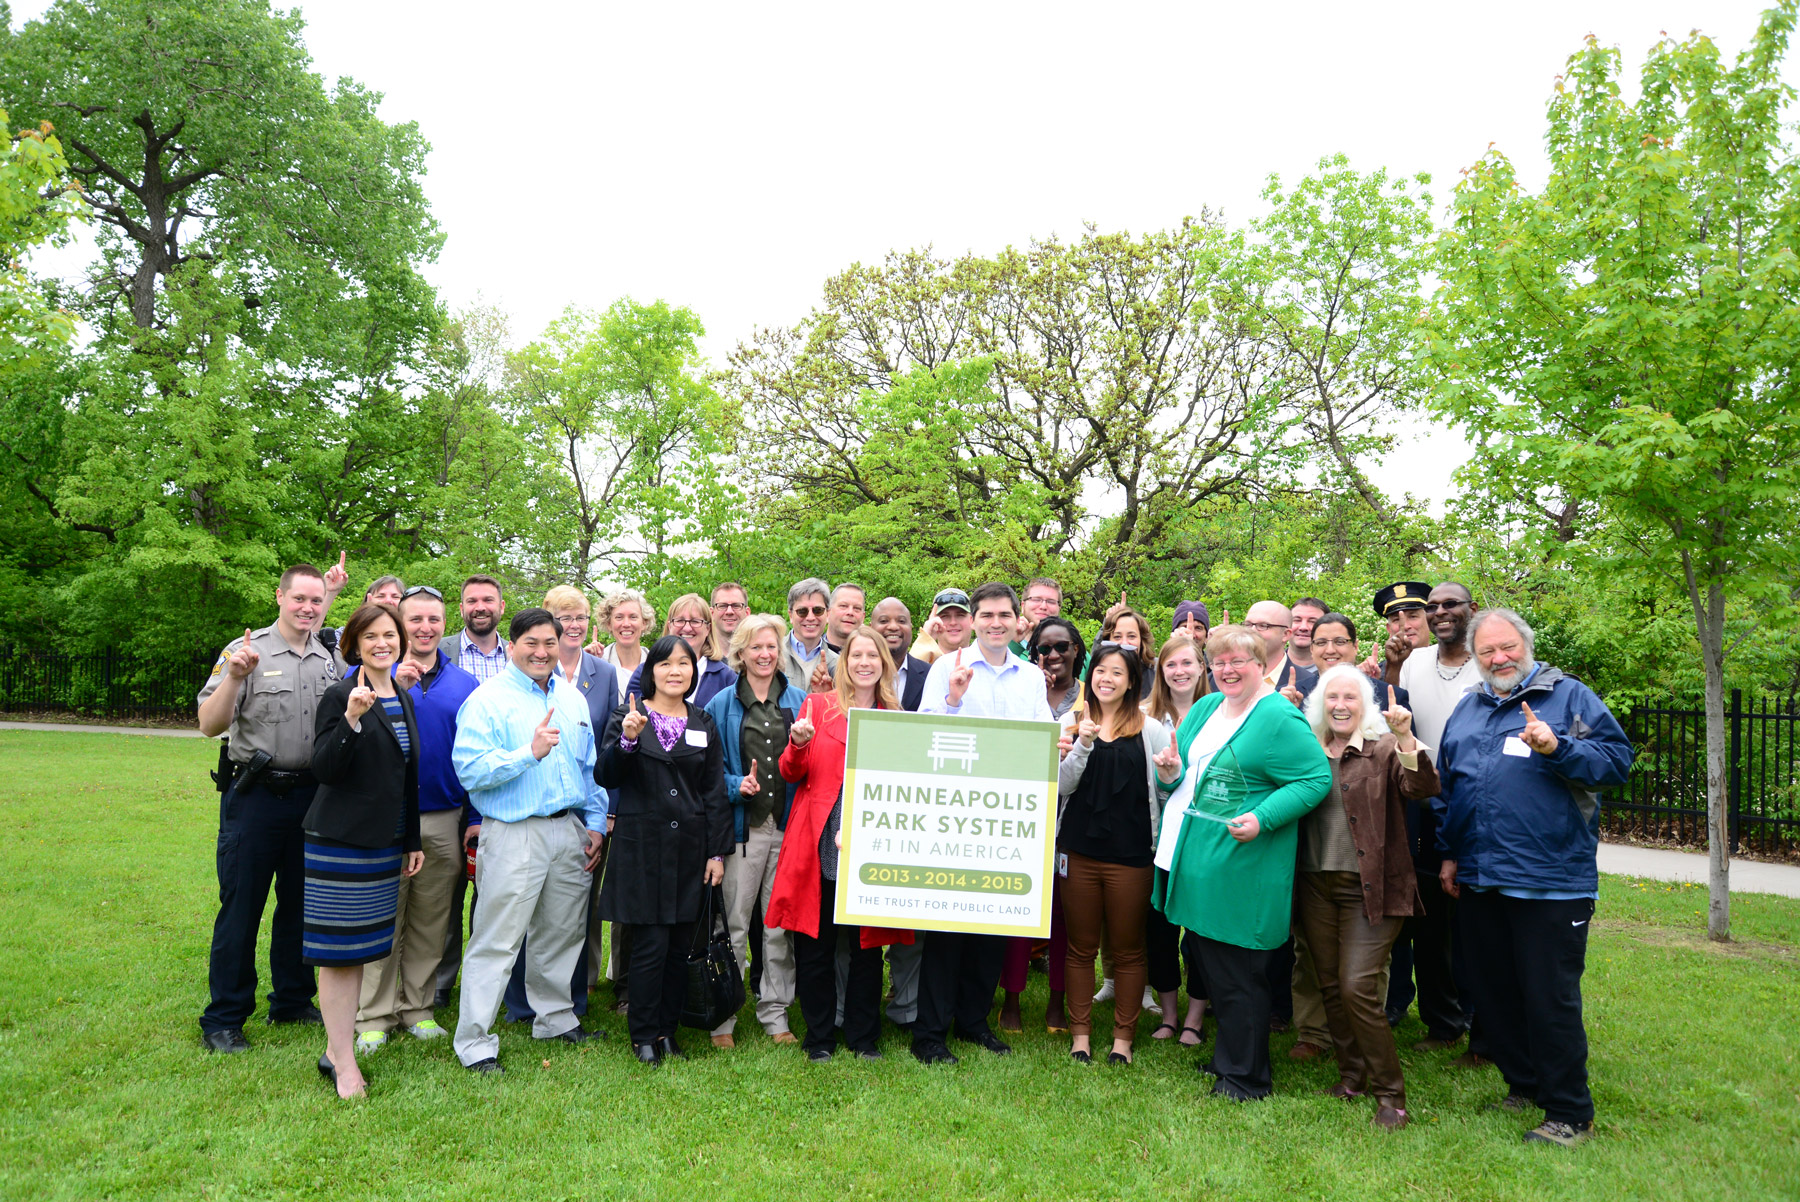 Minneapolis park officials celebrated a No. 1 ranking from The Trust for Public Land both this and last year. Photo courtesy of the Minneapolis Park and Recreation Board